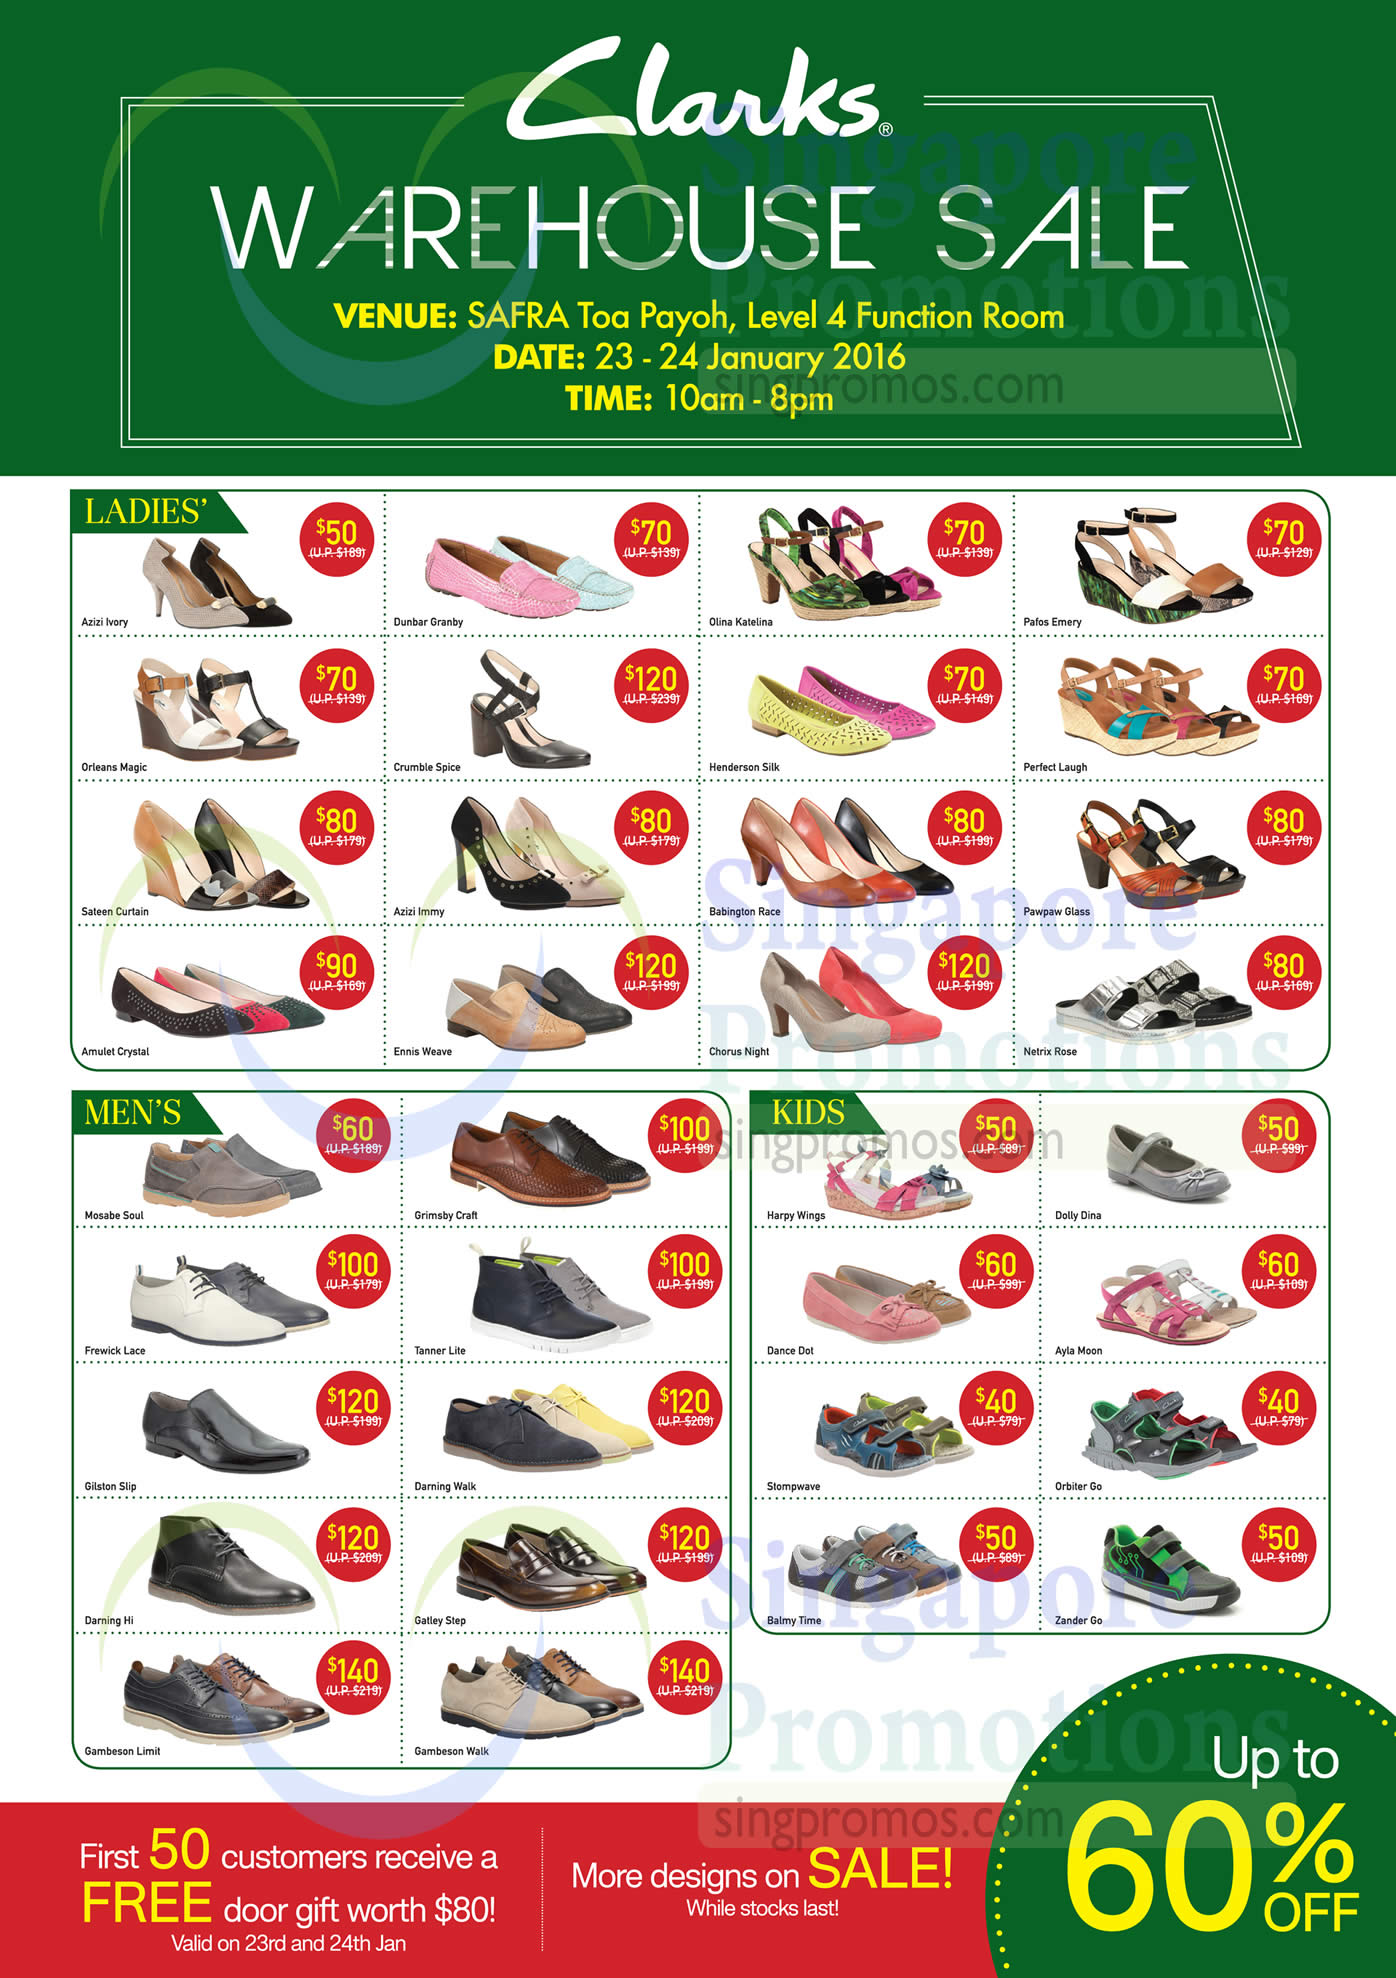 c656b31334e1 Clarks Sale Price List » Clarks Warehouse Sale   SAFRA Toa Payoh 23 ...